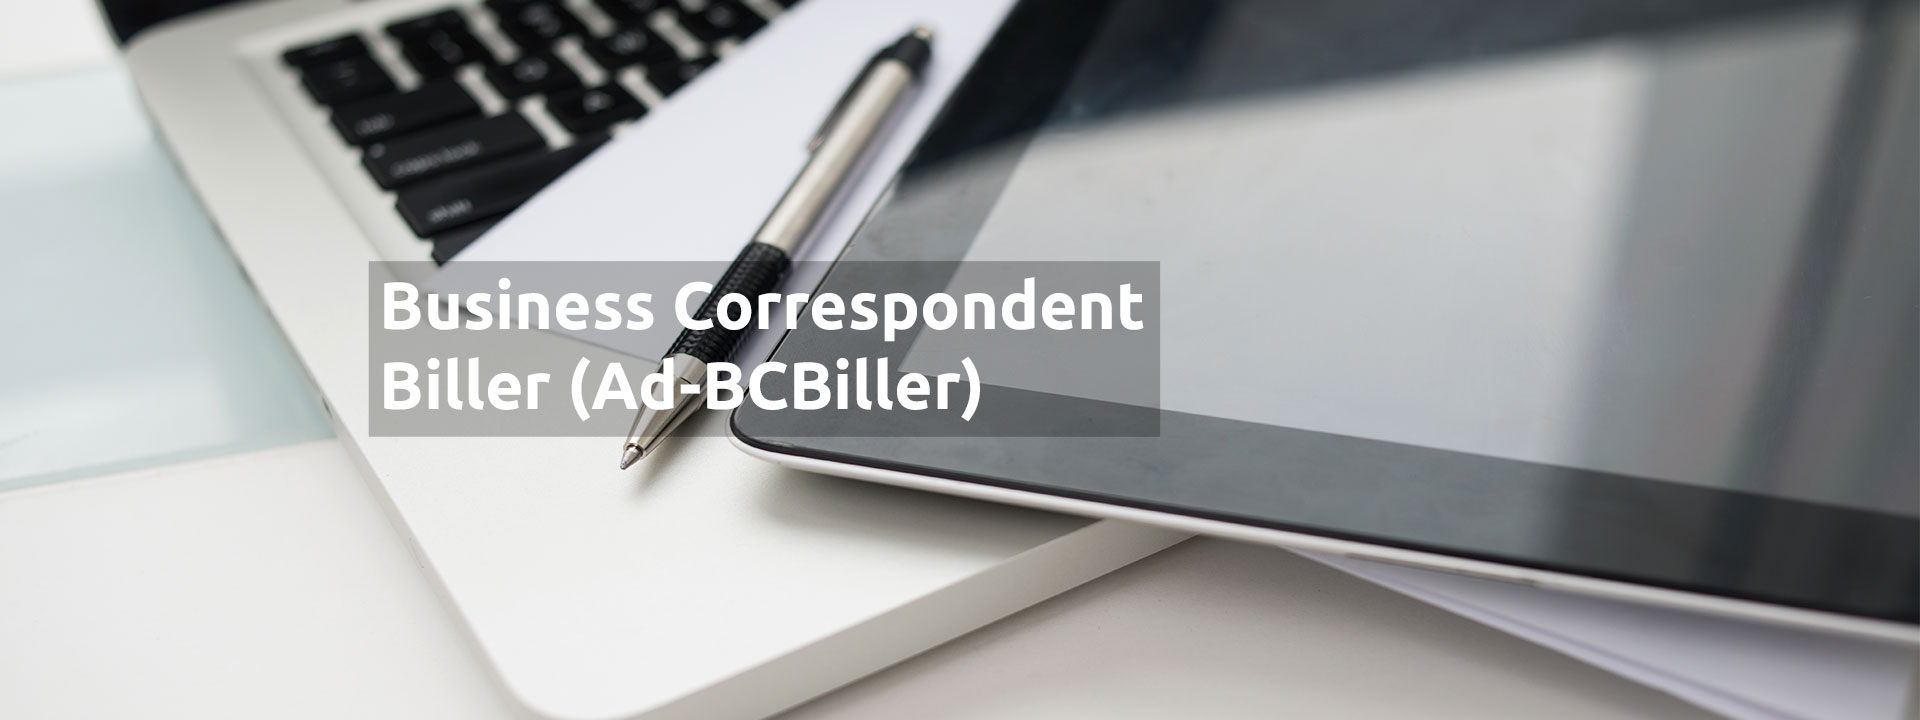 Ad-Business Correspondent Biller